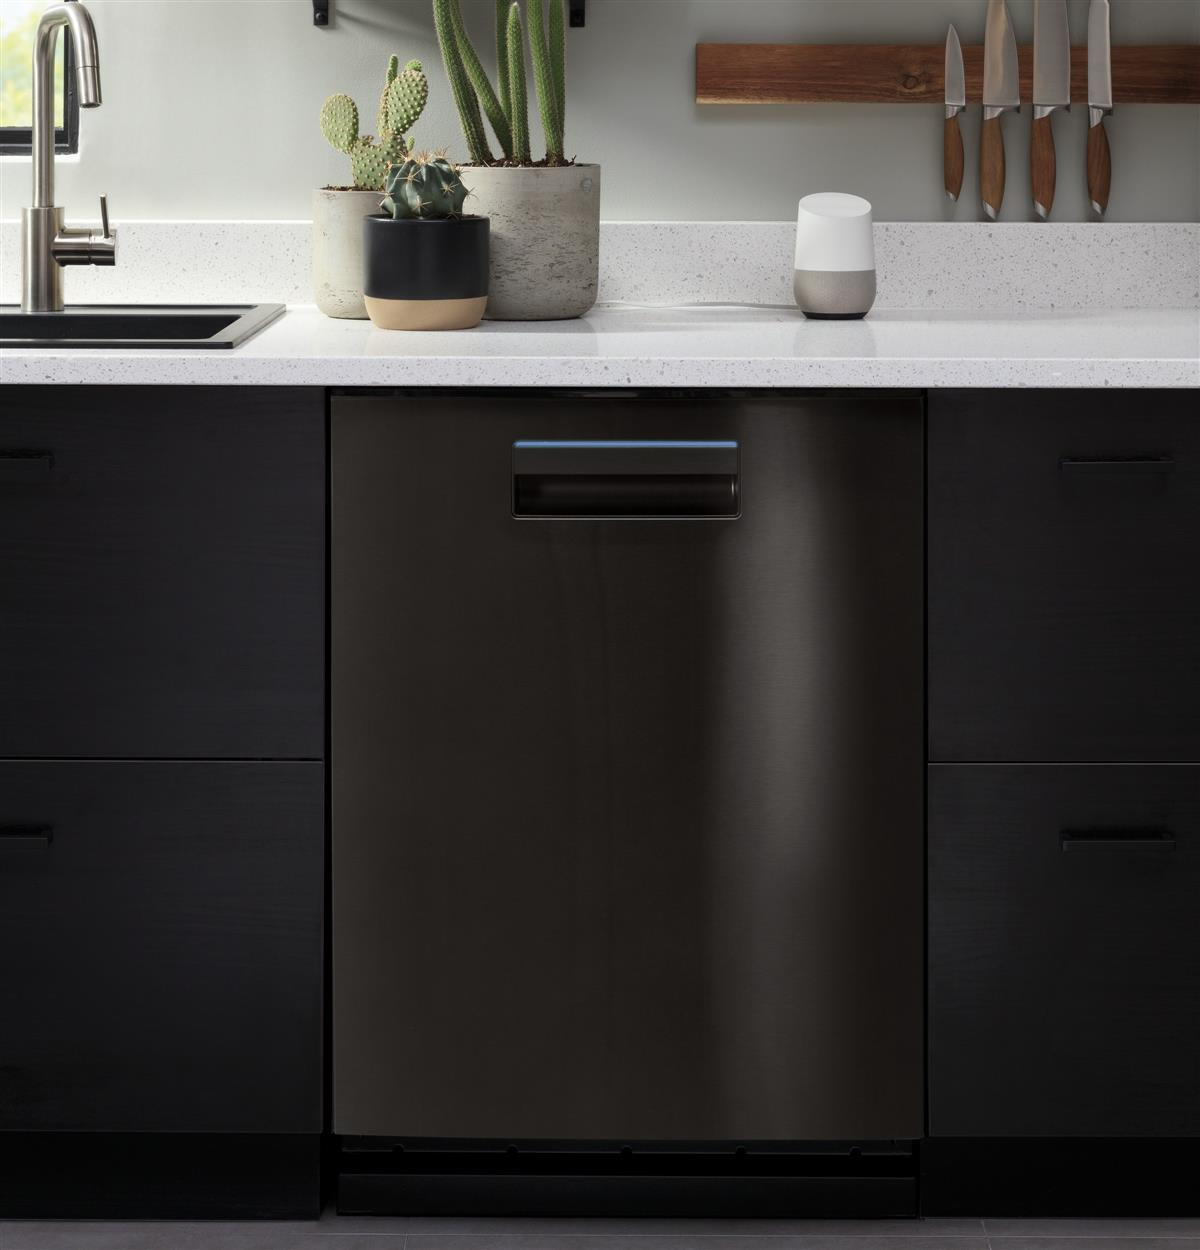 At-a-glance, the status bar lets you know how your dishwasher is doing, while you're busy doing other things. The bar turns blue when it's running and white when it's finished